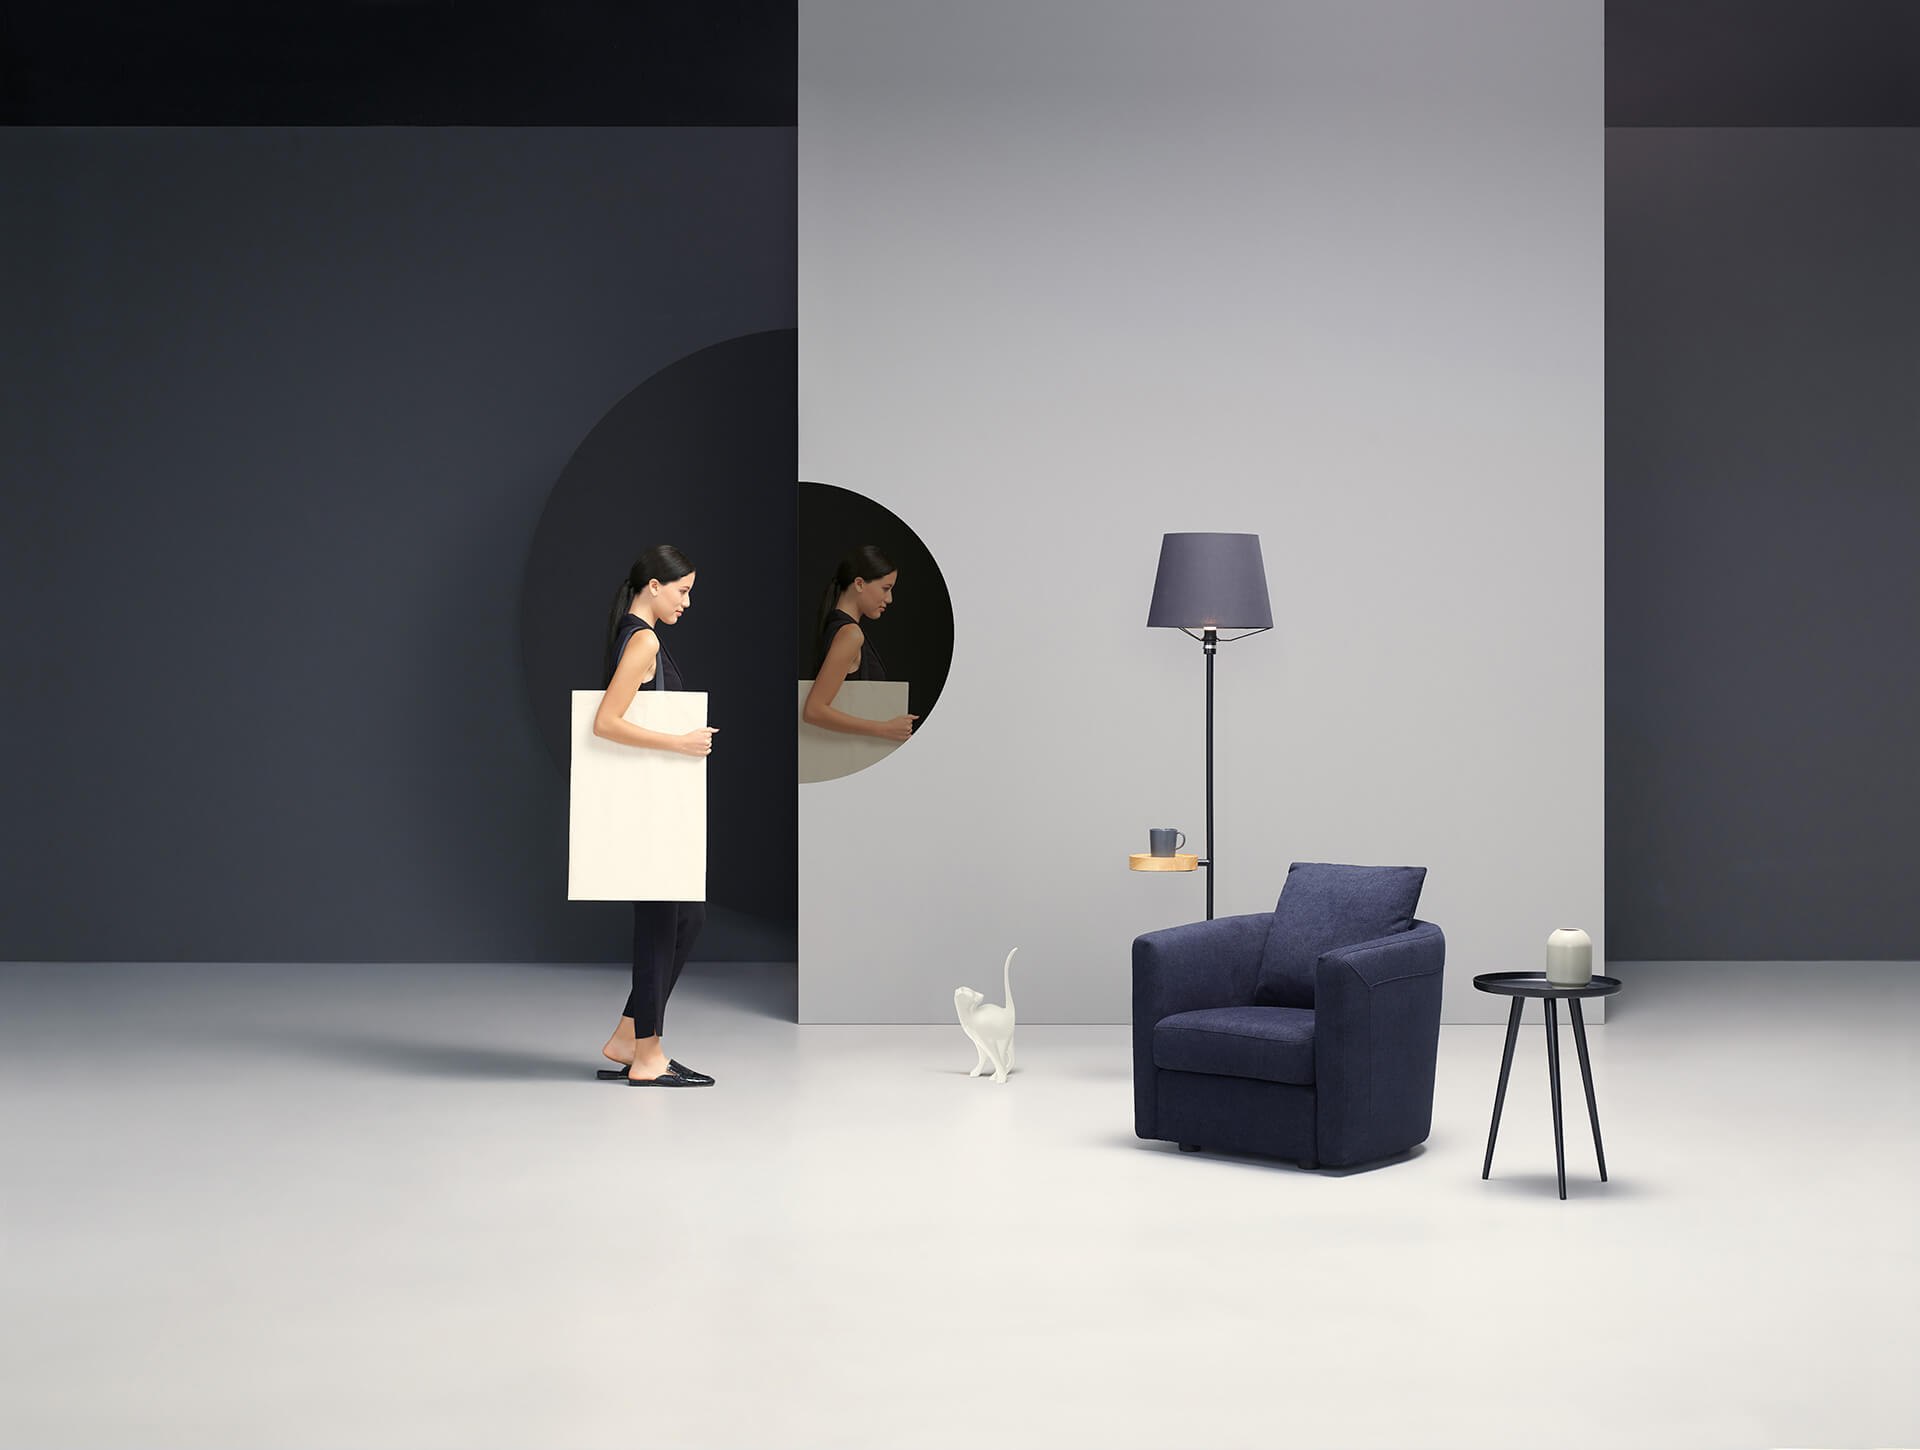 Nest Chair by Script - A Godrej venture | Script - a Godrej venture | STIRworld